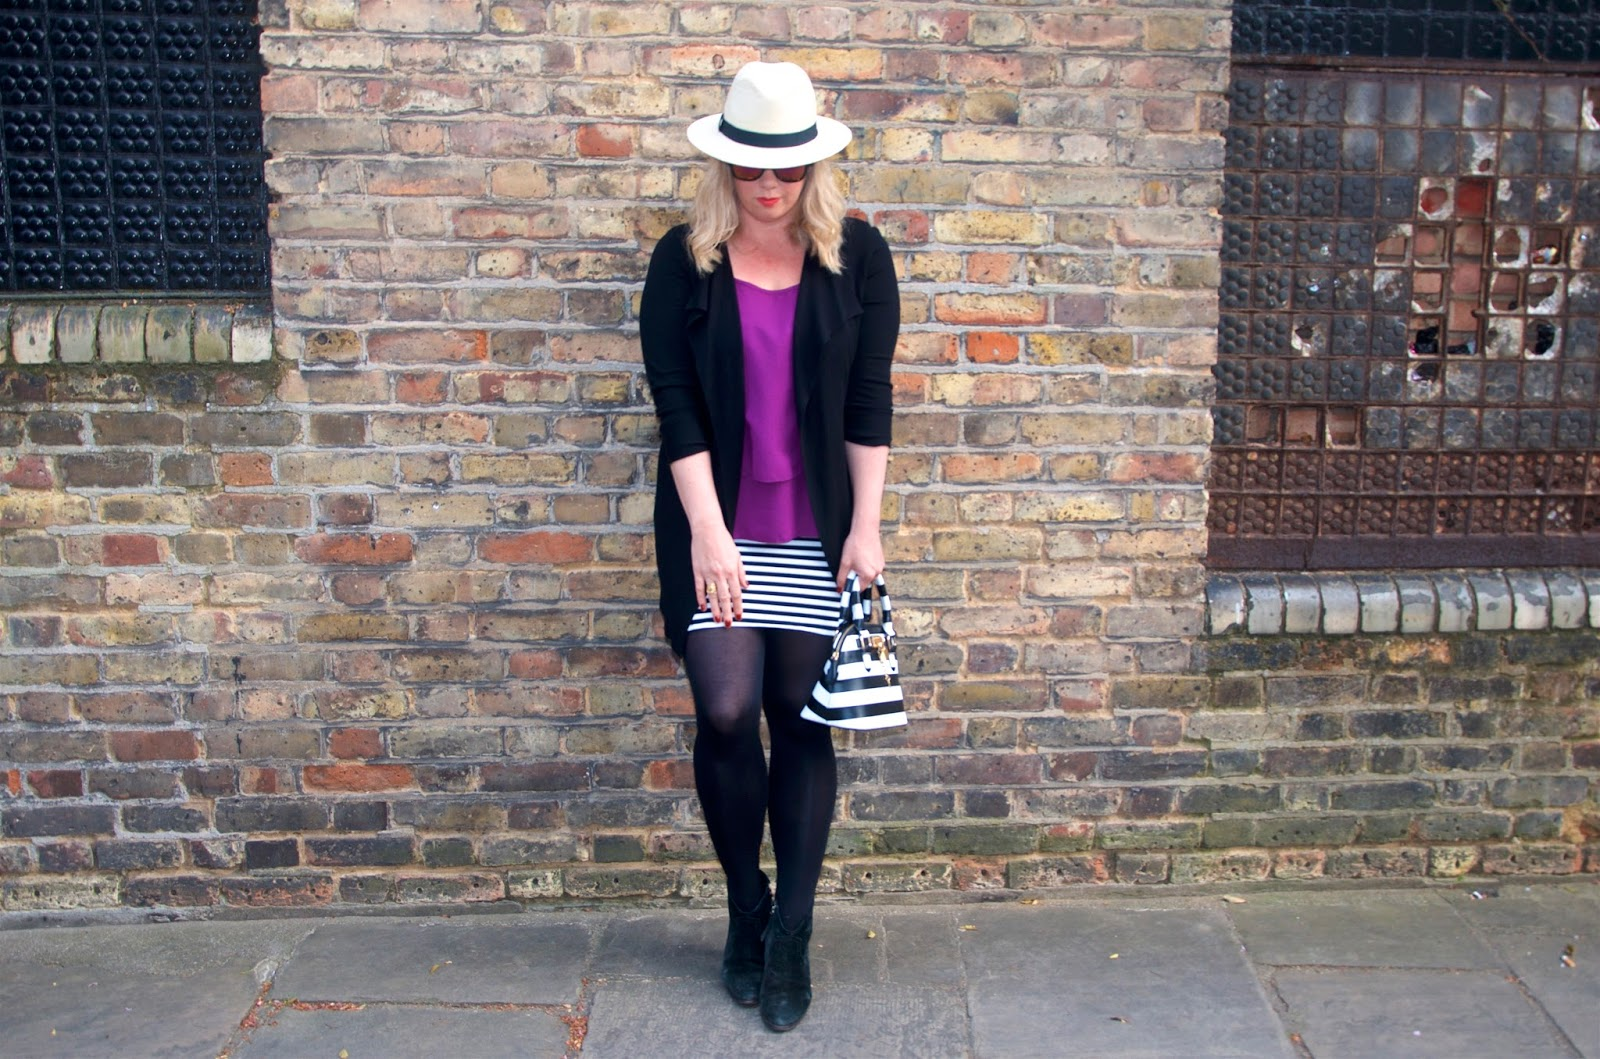 panama straw hat, pink top, waterfall cardigan and stripes